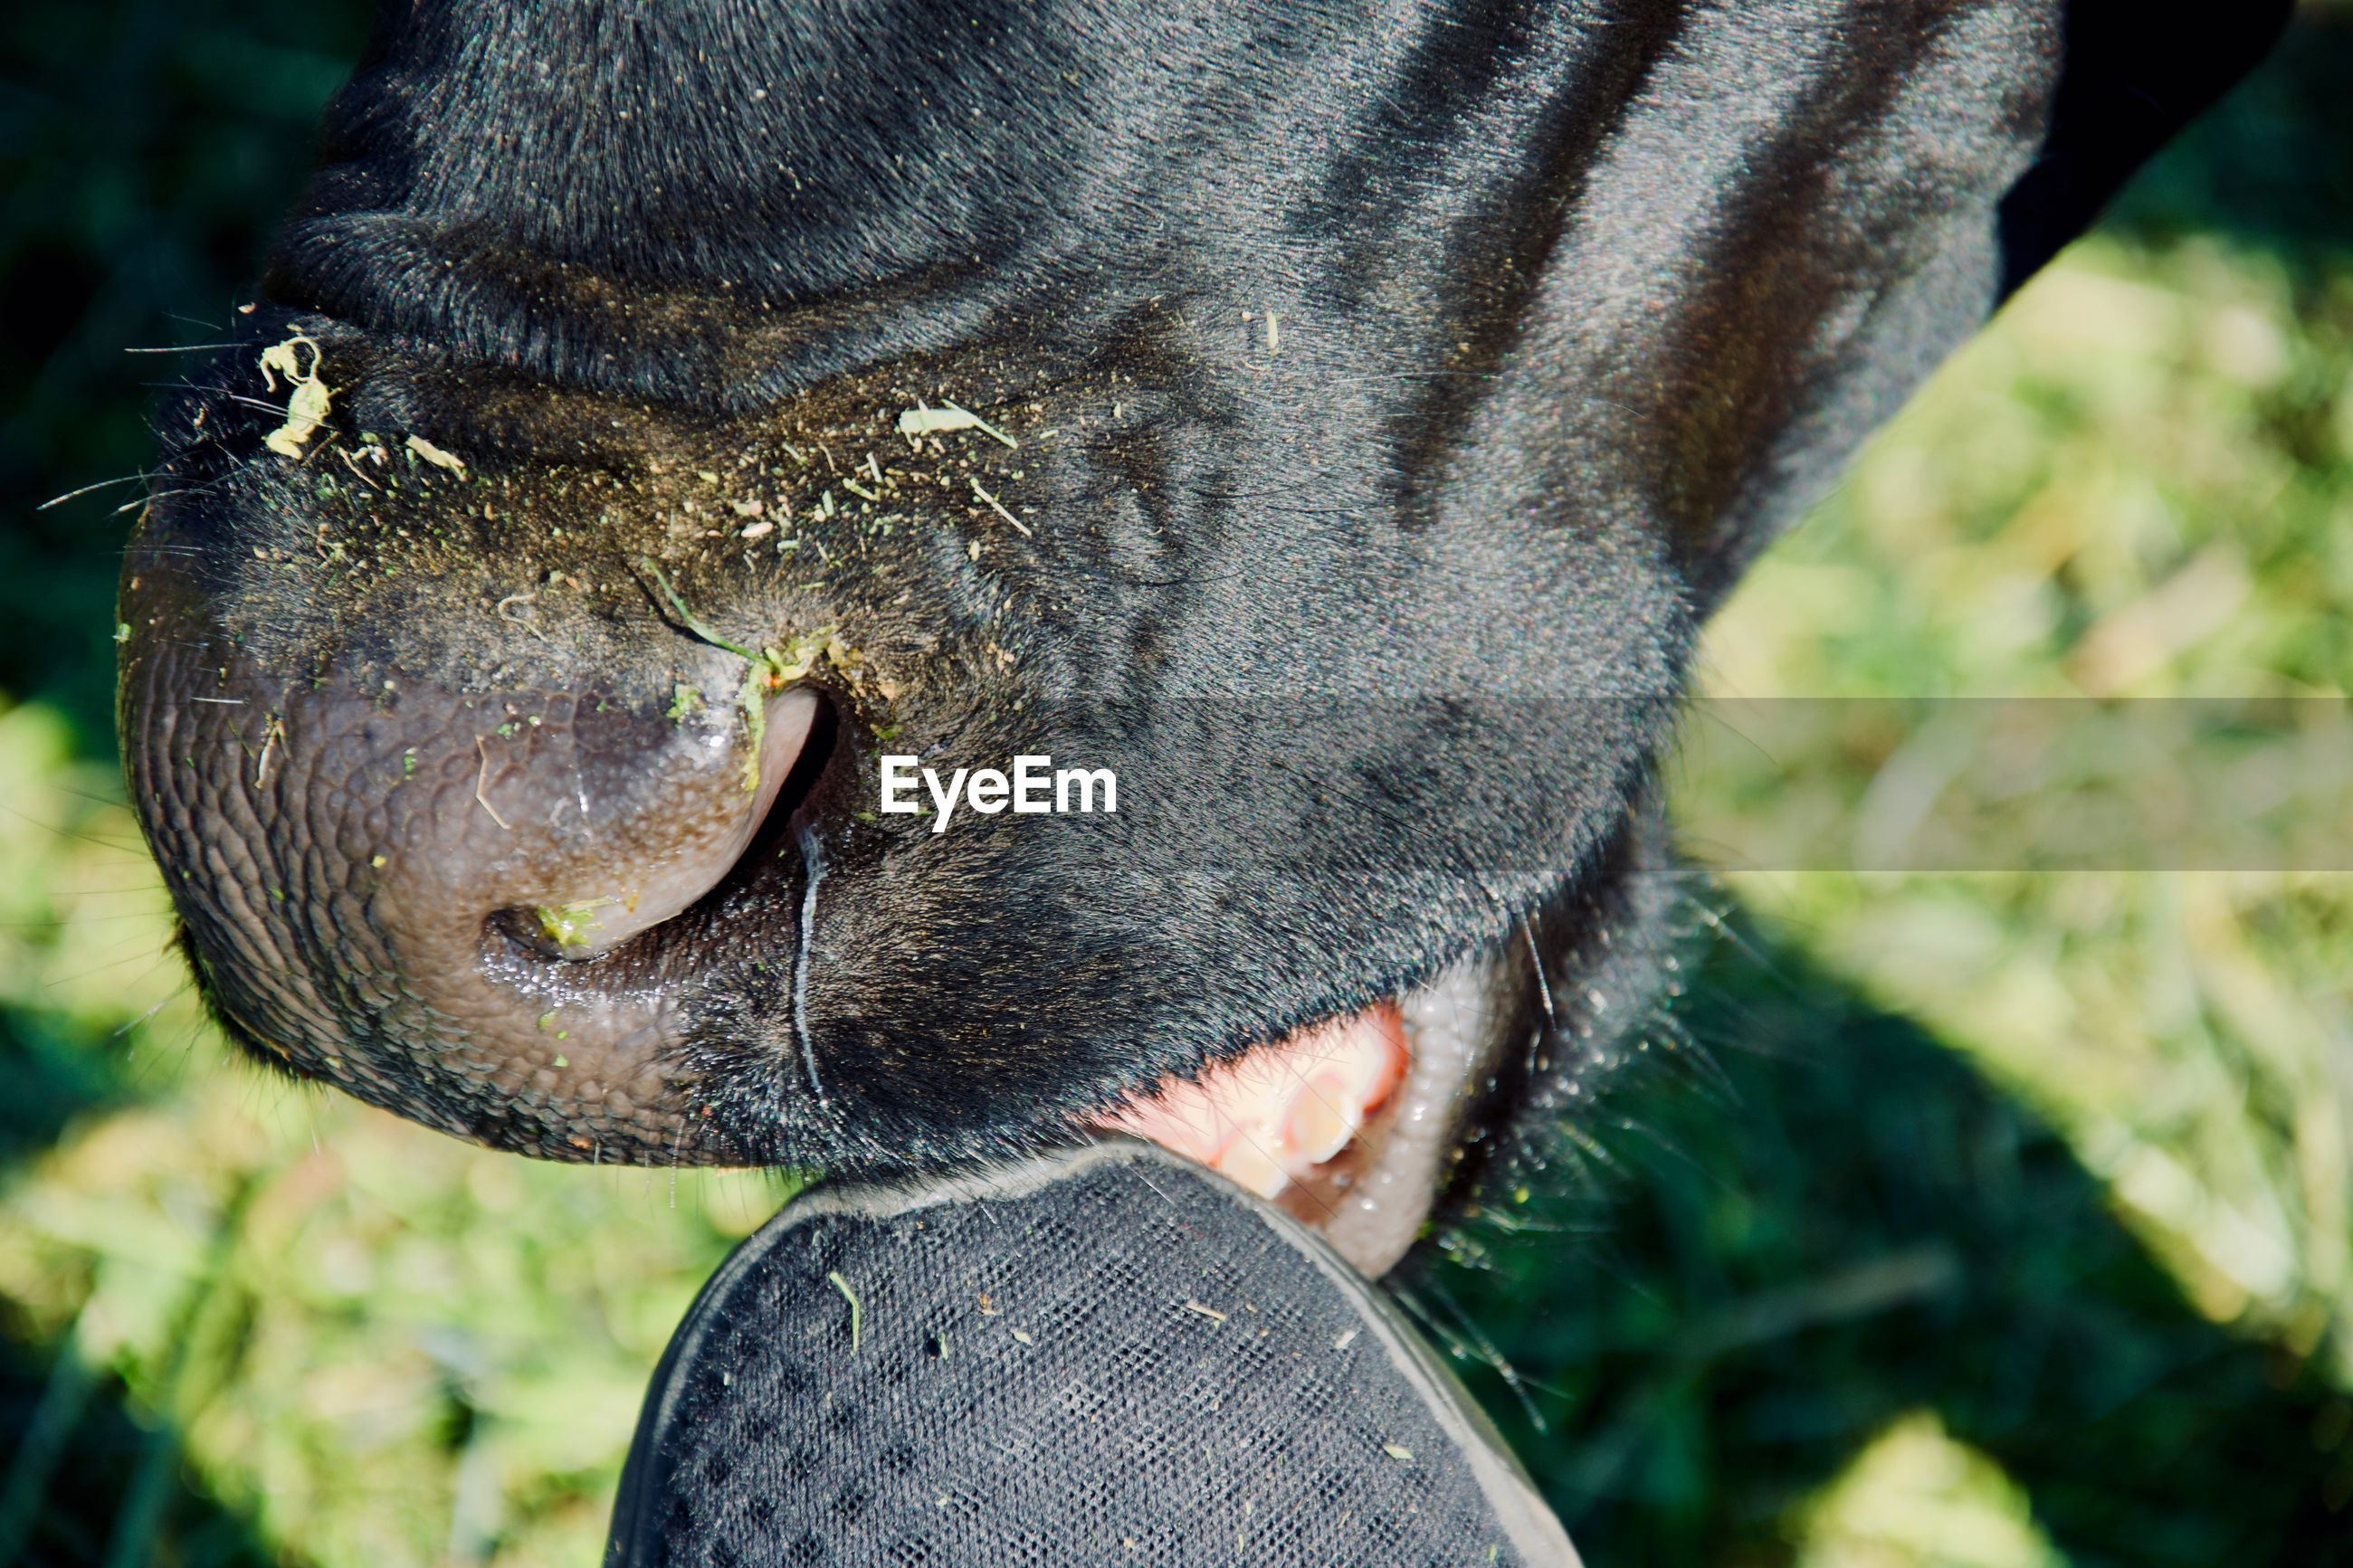 one animal, mammal, animal, animal themes, vertebrate, pets, domestic, close-up, domestic animals, focus on foreground, animal body part, animal head, day, animal nose, livestock, animal mouth, cattle, real people, animal wildlife, nature, outdoors, herbivorous, snout, animal teeth